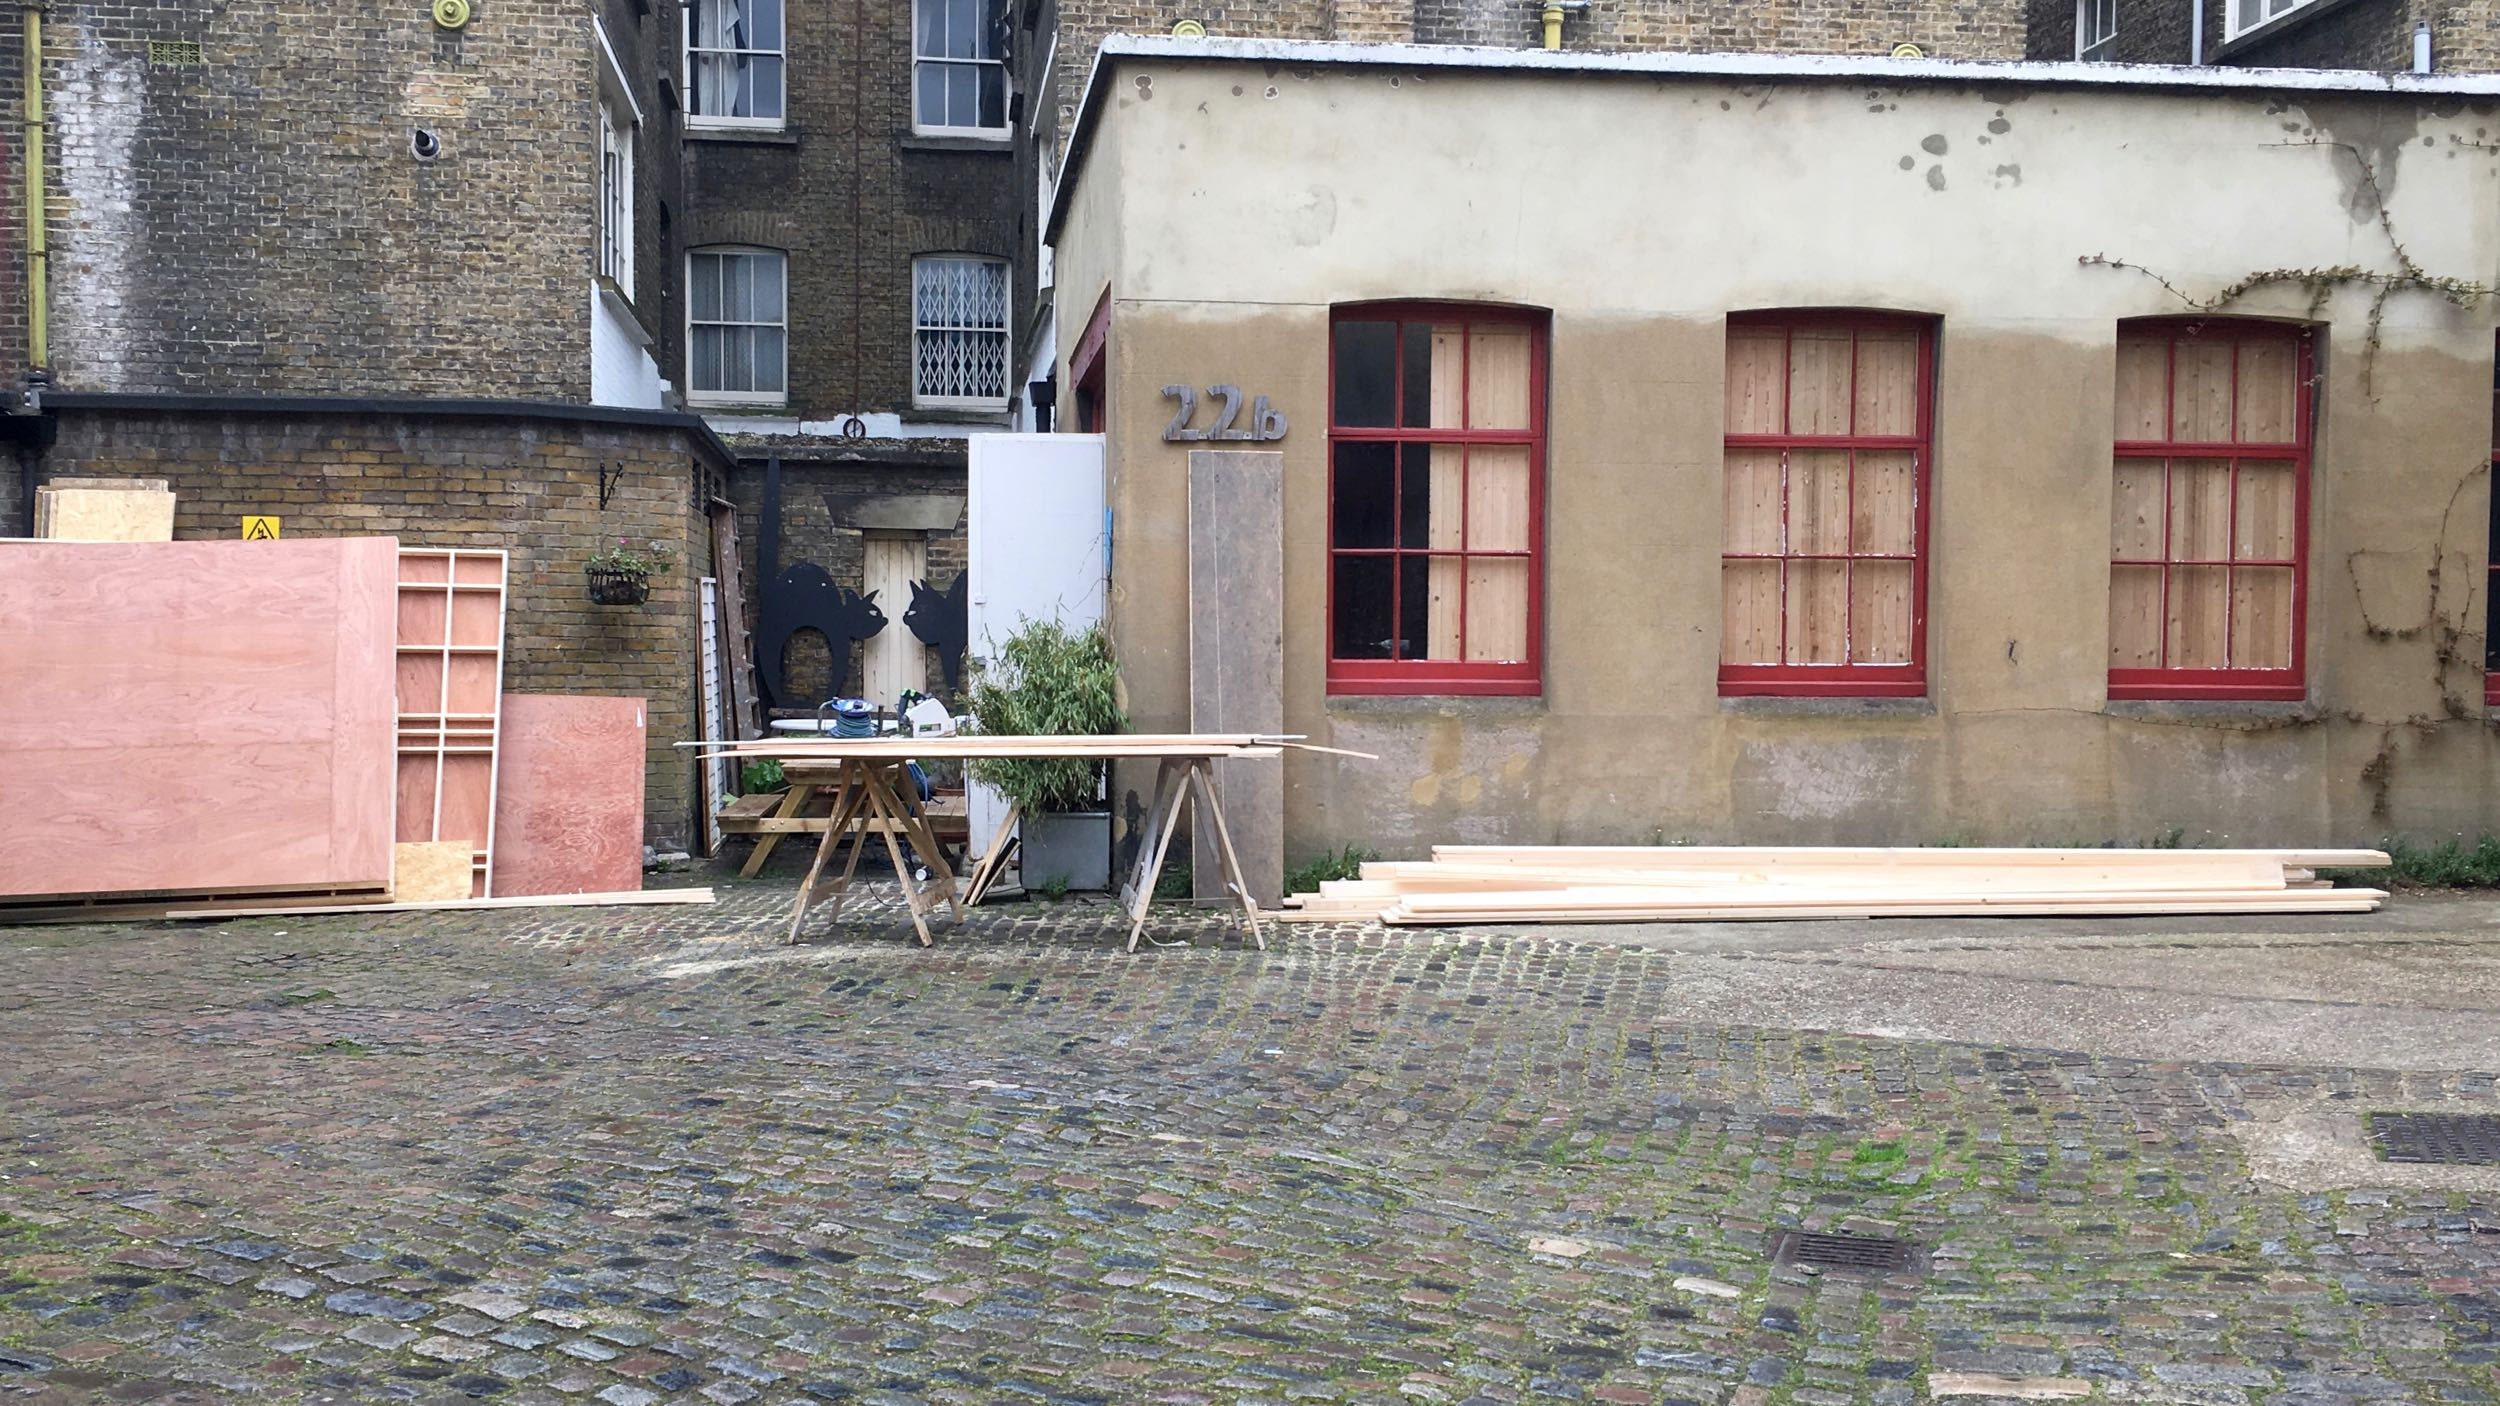 paramount Set builders spreading out in iliffe yard, building a set in Studio Boardroom For Brad Pitts latest film 'Allied' to be released in November 2016.